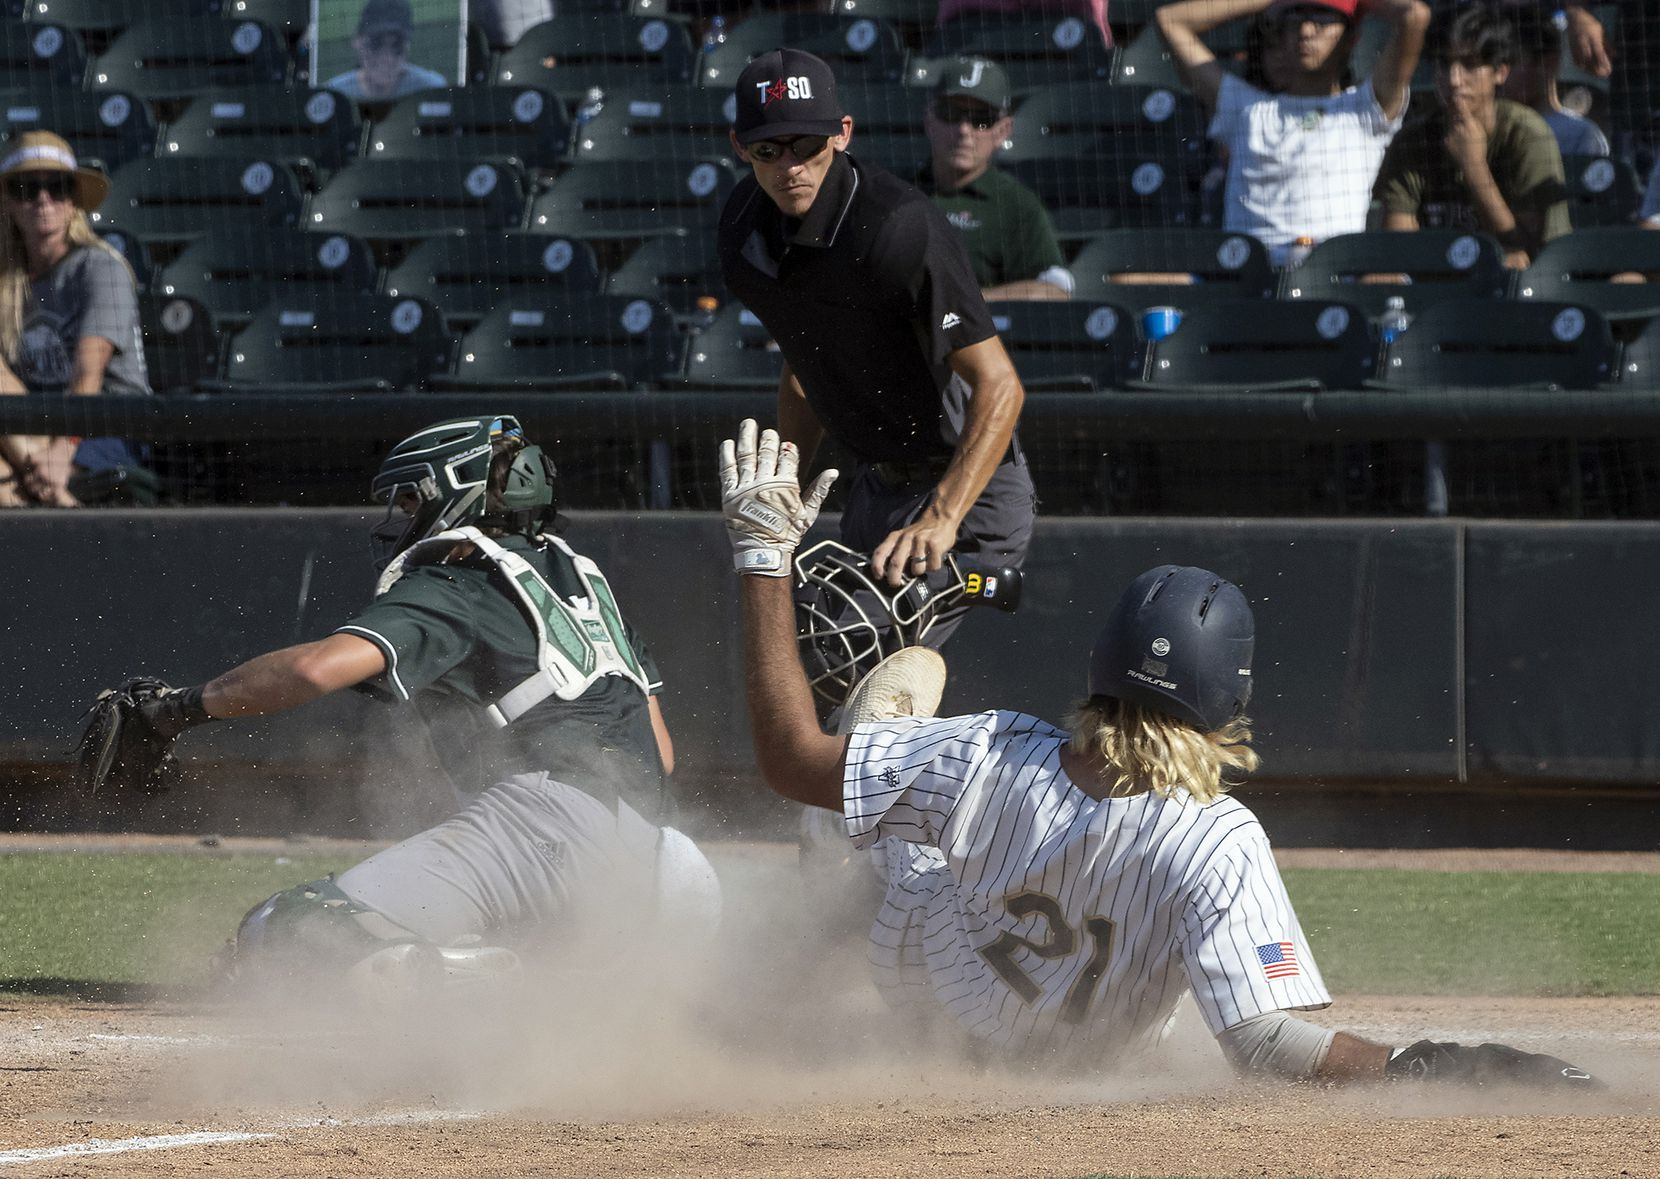 Keller Gray Rowlett, (21), slides safely into home plate as Houston Strake Jesuit catcher, Mike Dattalo, (15), is late on a tag during the fourth inning of the 2021 UIL 6A state baseball semifinals held, Friday, June 11, 2021, in Round Rock, Texas. Keller defeated Strake Jesuit 7-1.   (Rodolfo Gonzalez/Special Contributor)